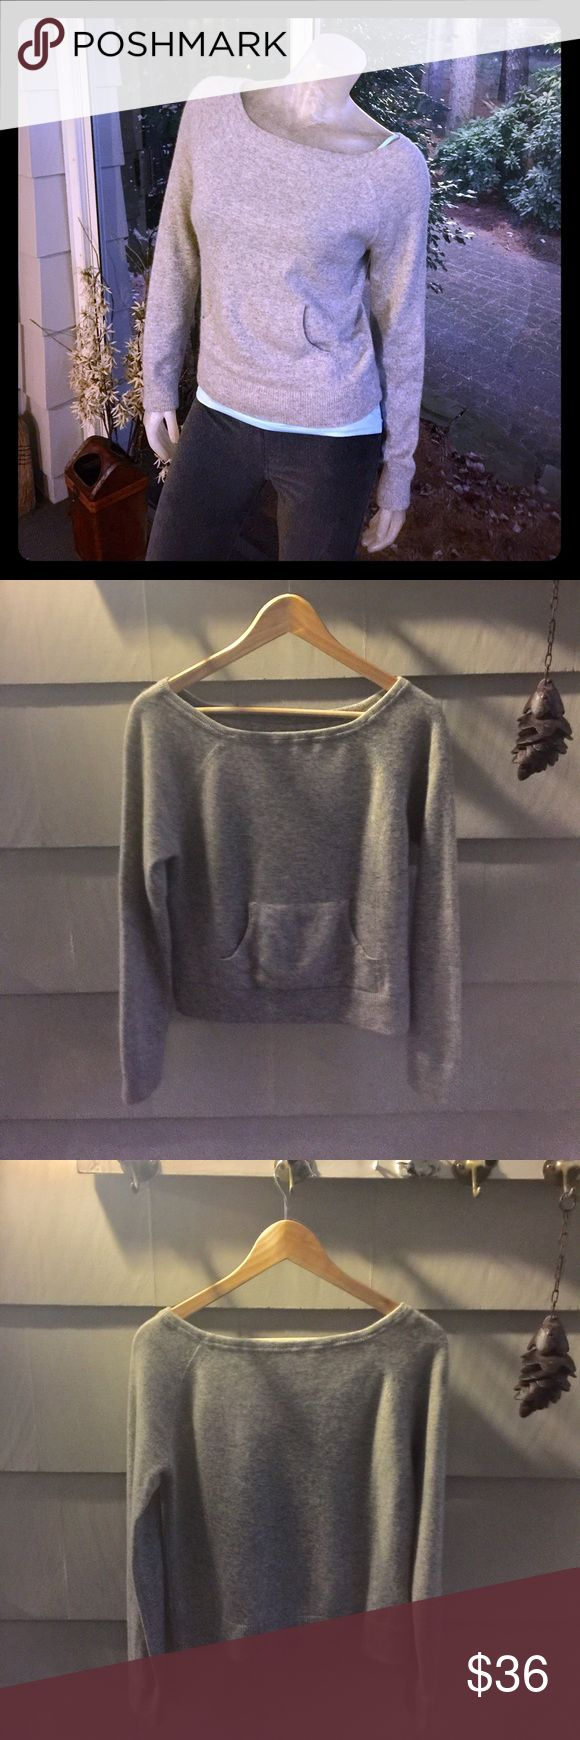 Express 100% Cashmere Crop Sweater Heather Gray 100% Cashmere Baotneck style Sweater with kangaroo pouch is warm and soft and in very good pre-owned condition. No issues except I removed the Express tag because it bothered me. Size Small/Medium 2, 4, 6 best fit. No trades, please. Will soon add better daylight pics. Express Sweaters Crew & Scoop Necks